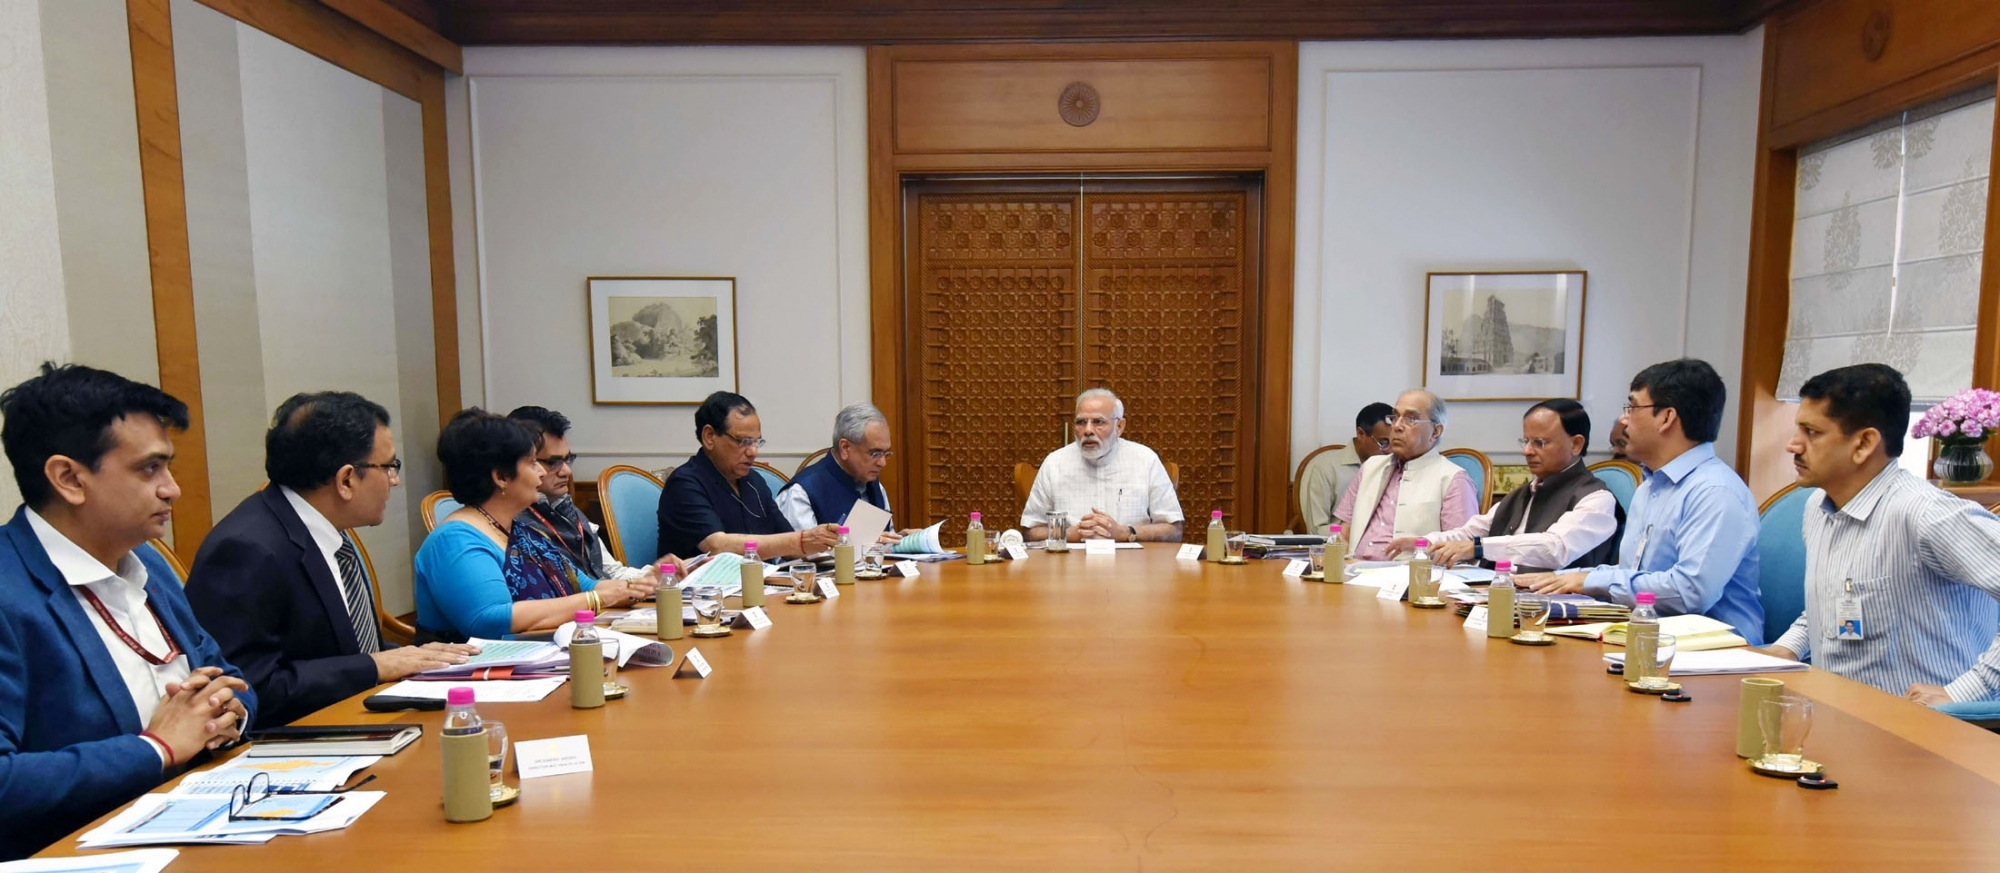 Prime Minister Narendra Modi reviews the preparations for launch of Health Assurance programme under Ayushman Bharat in New Delhi on May 7, 2018. (Photo: IANS/PIB)